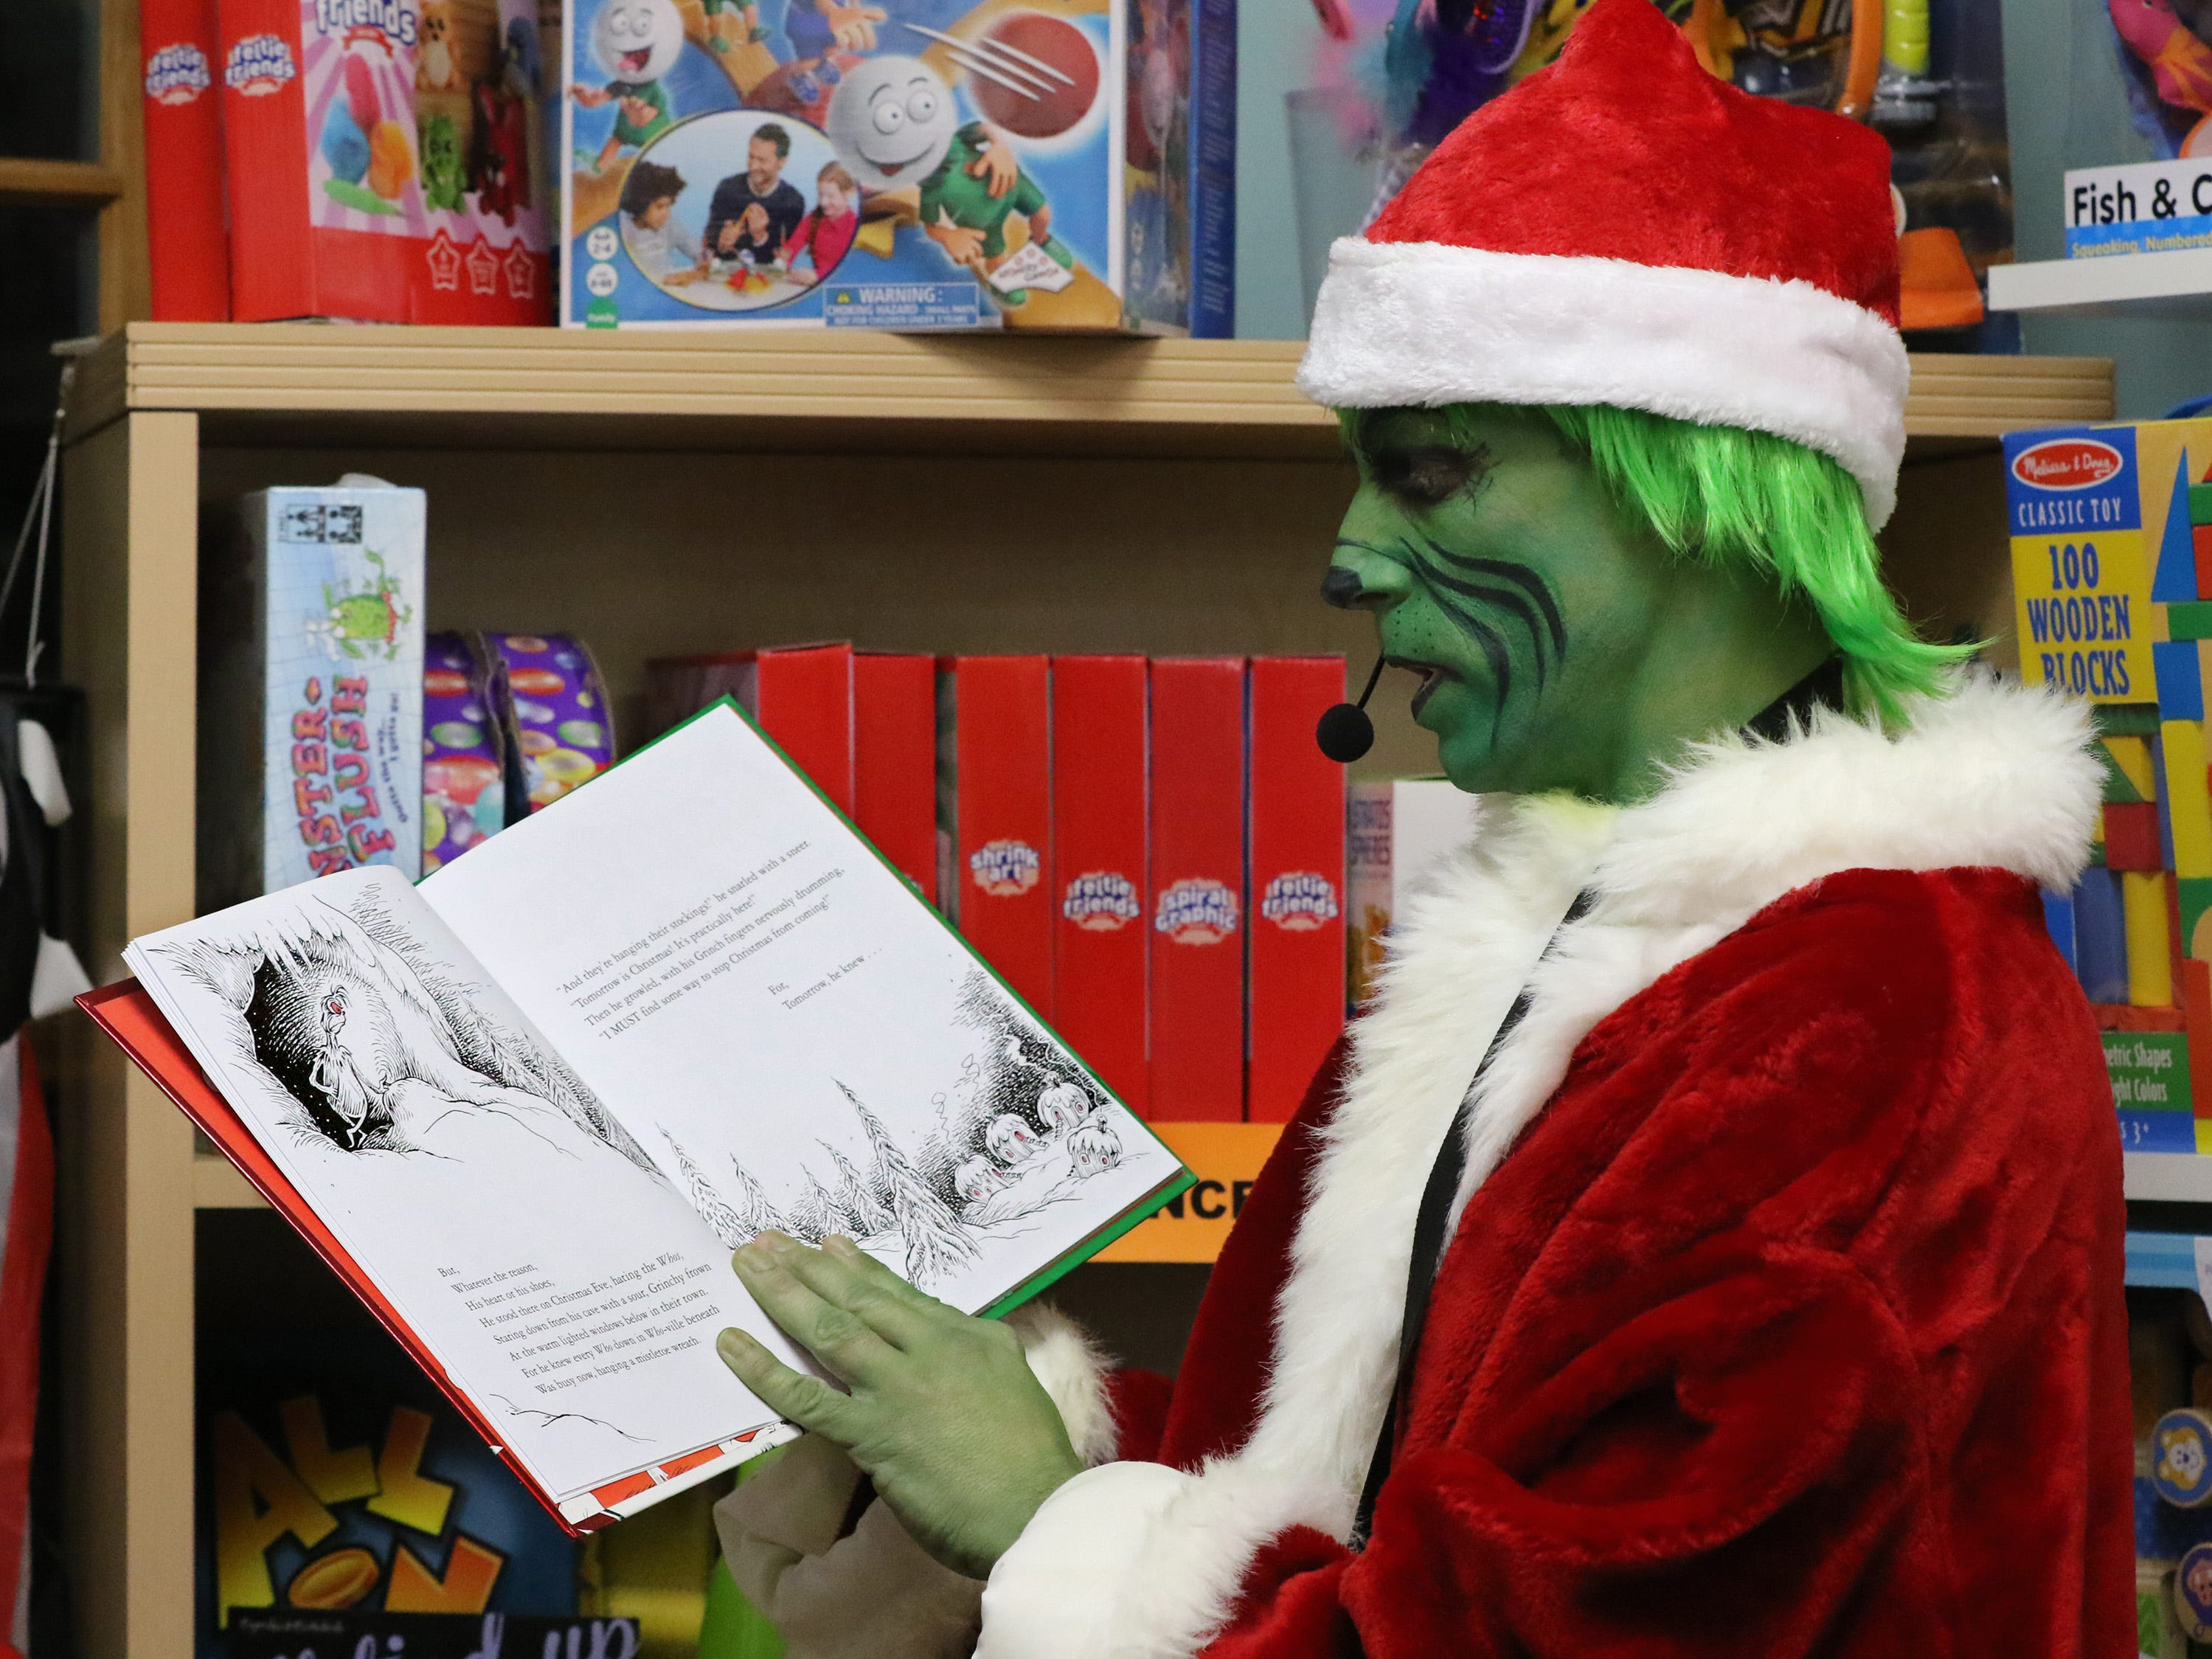 The Grinch, played by Rich Schoenholtz, reads from his favorite book to a packed store during Grinchmas in Pewaukee at Silly Willyz on Dec 6.